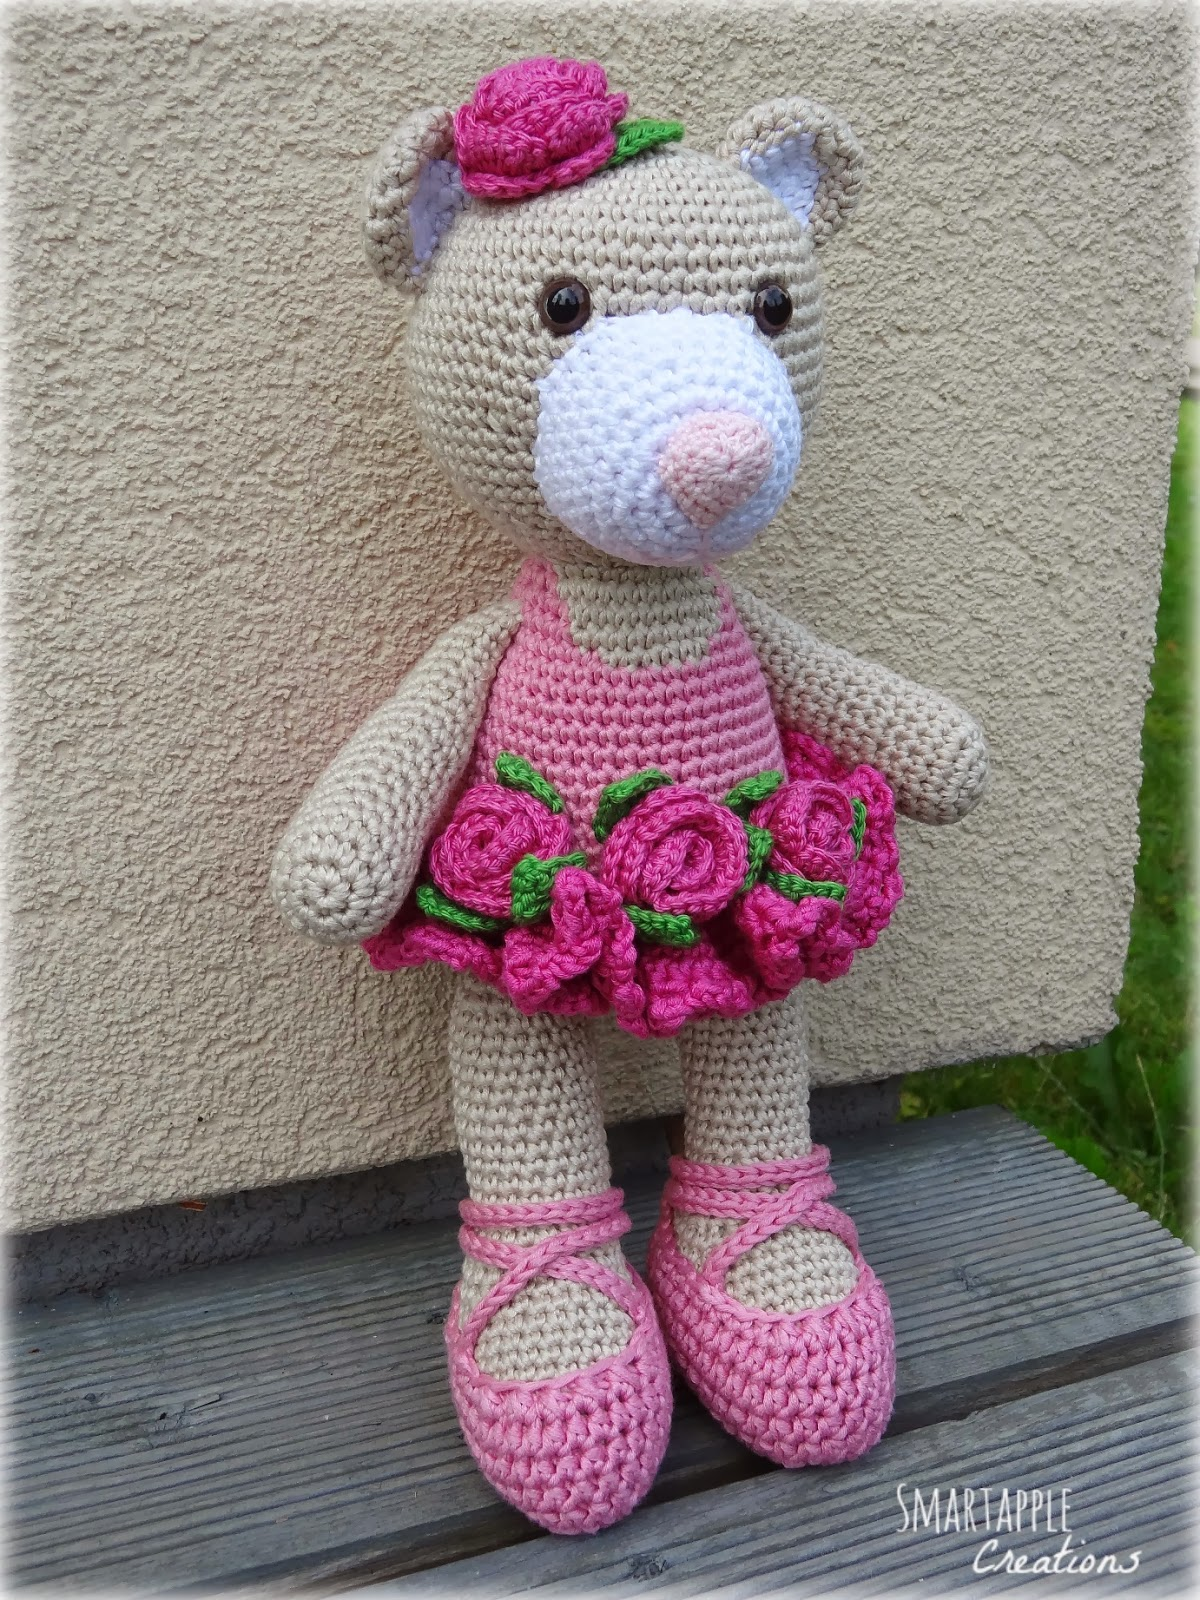 Crochet Ballerina Bear Free Pattern : Smartapple Creations - amigurumi and crochet: Bibi the ...